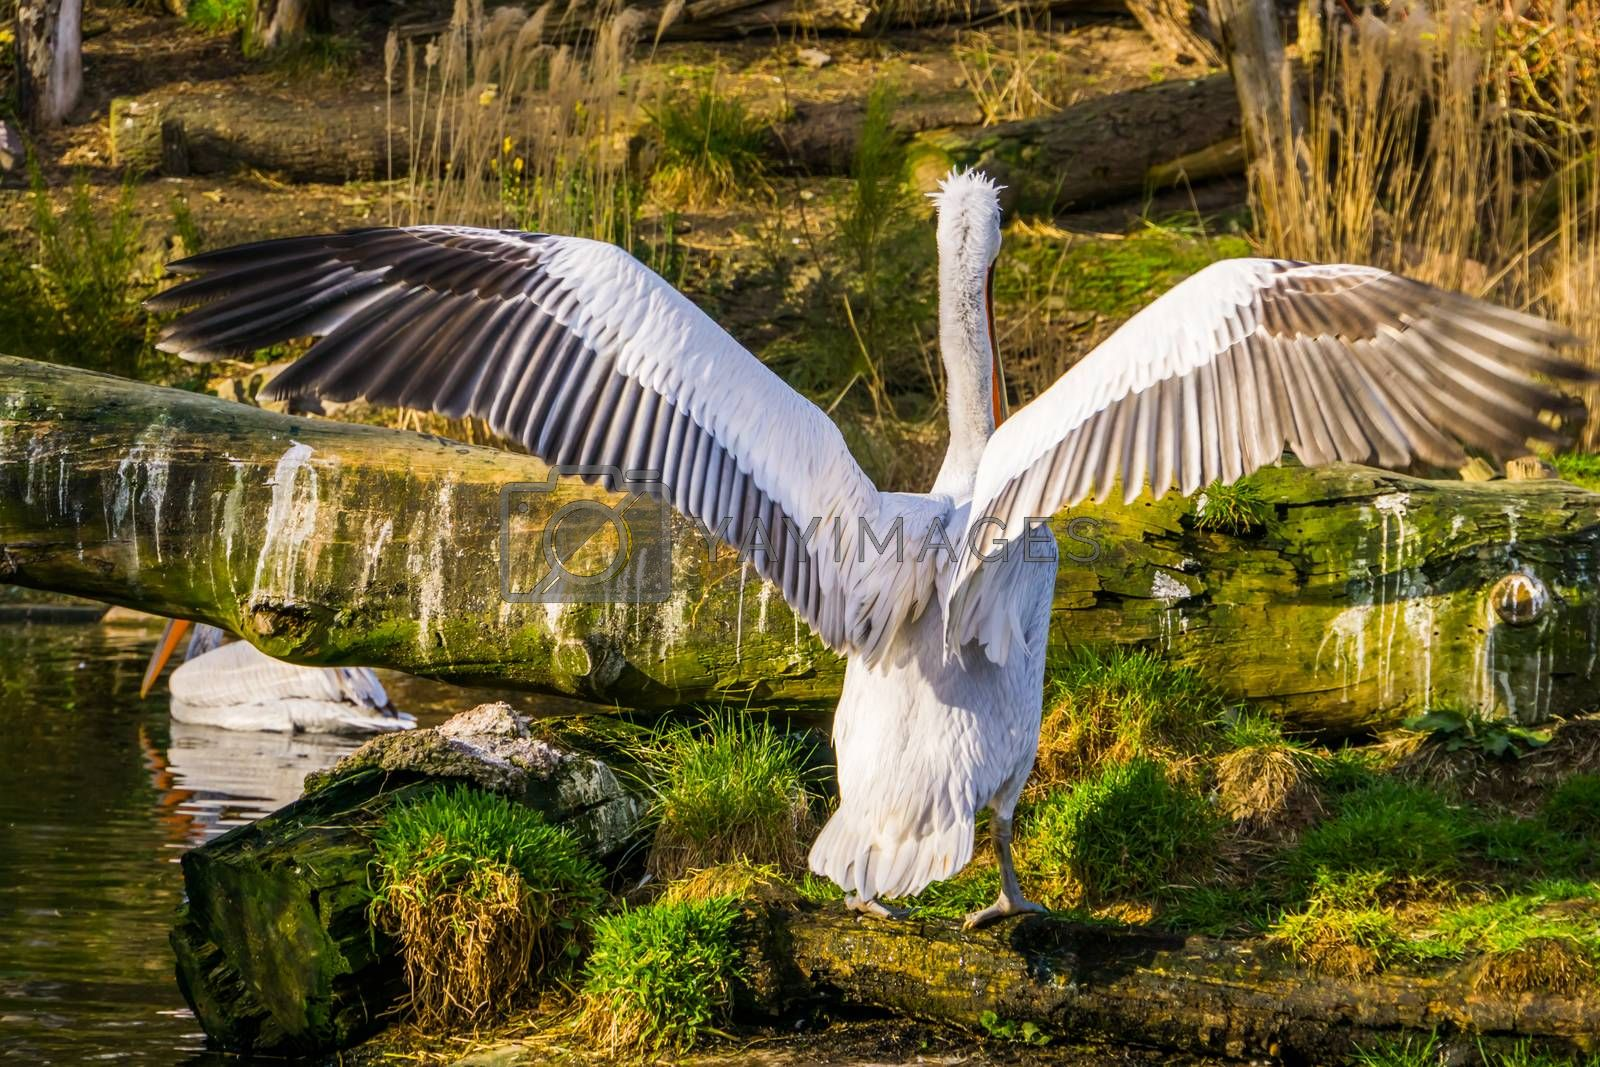 Dalmatian pelican from the back spreading its wings, near threatened animal specie from Europe and India by charlotte Bleijenberg